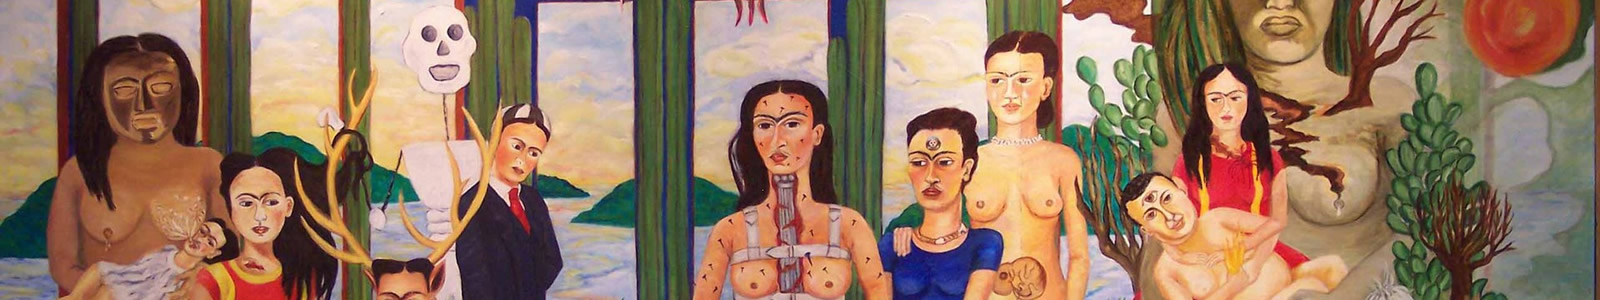 frida postmodern icon of the cyborg essays